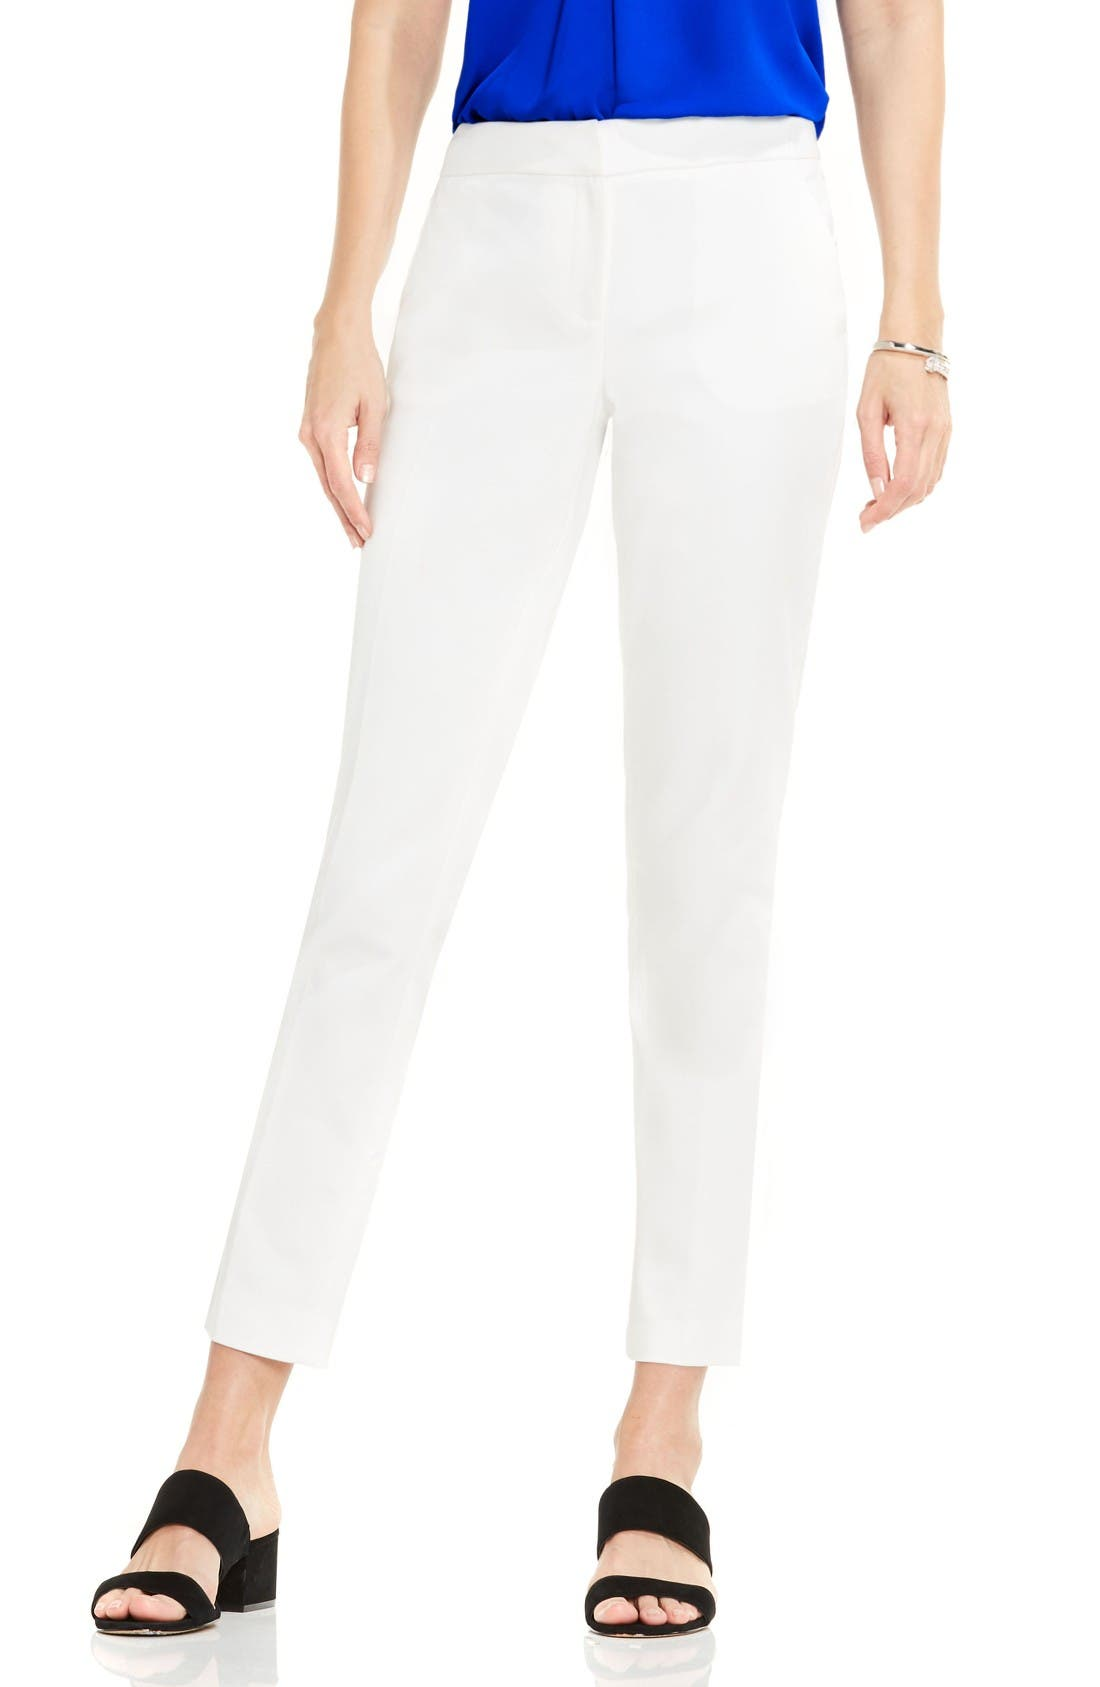 Main Image - Vince Camuto Double Weave Cotton Blend Ankle Pants (Regular & Petite)